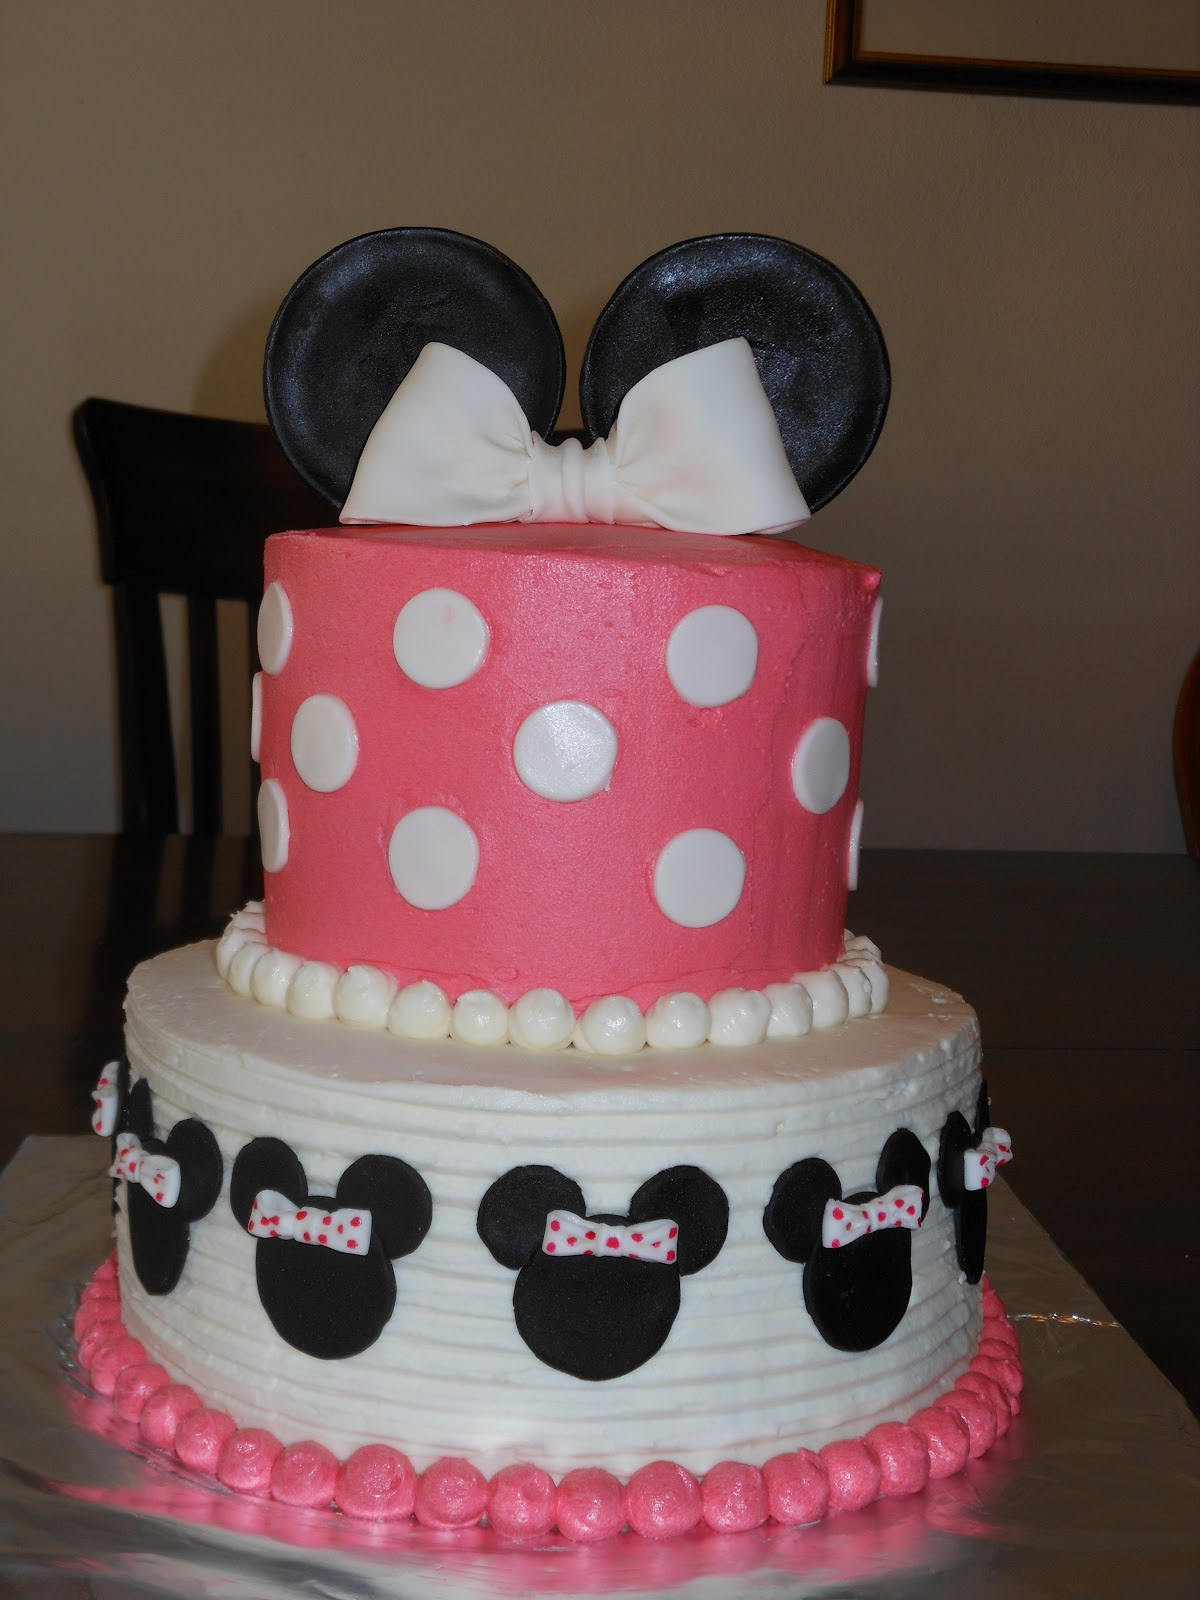 Its a piece of cake: Minnie Mouse Birthday Cake